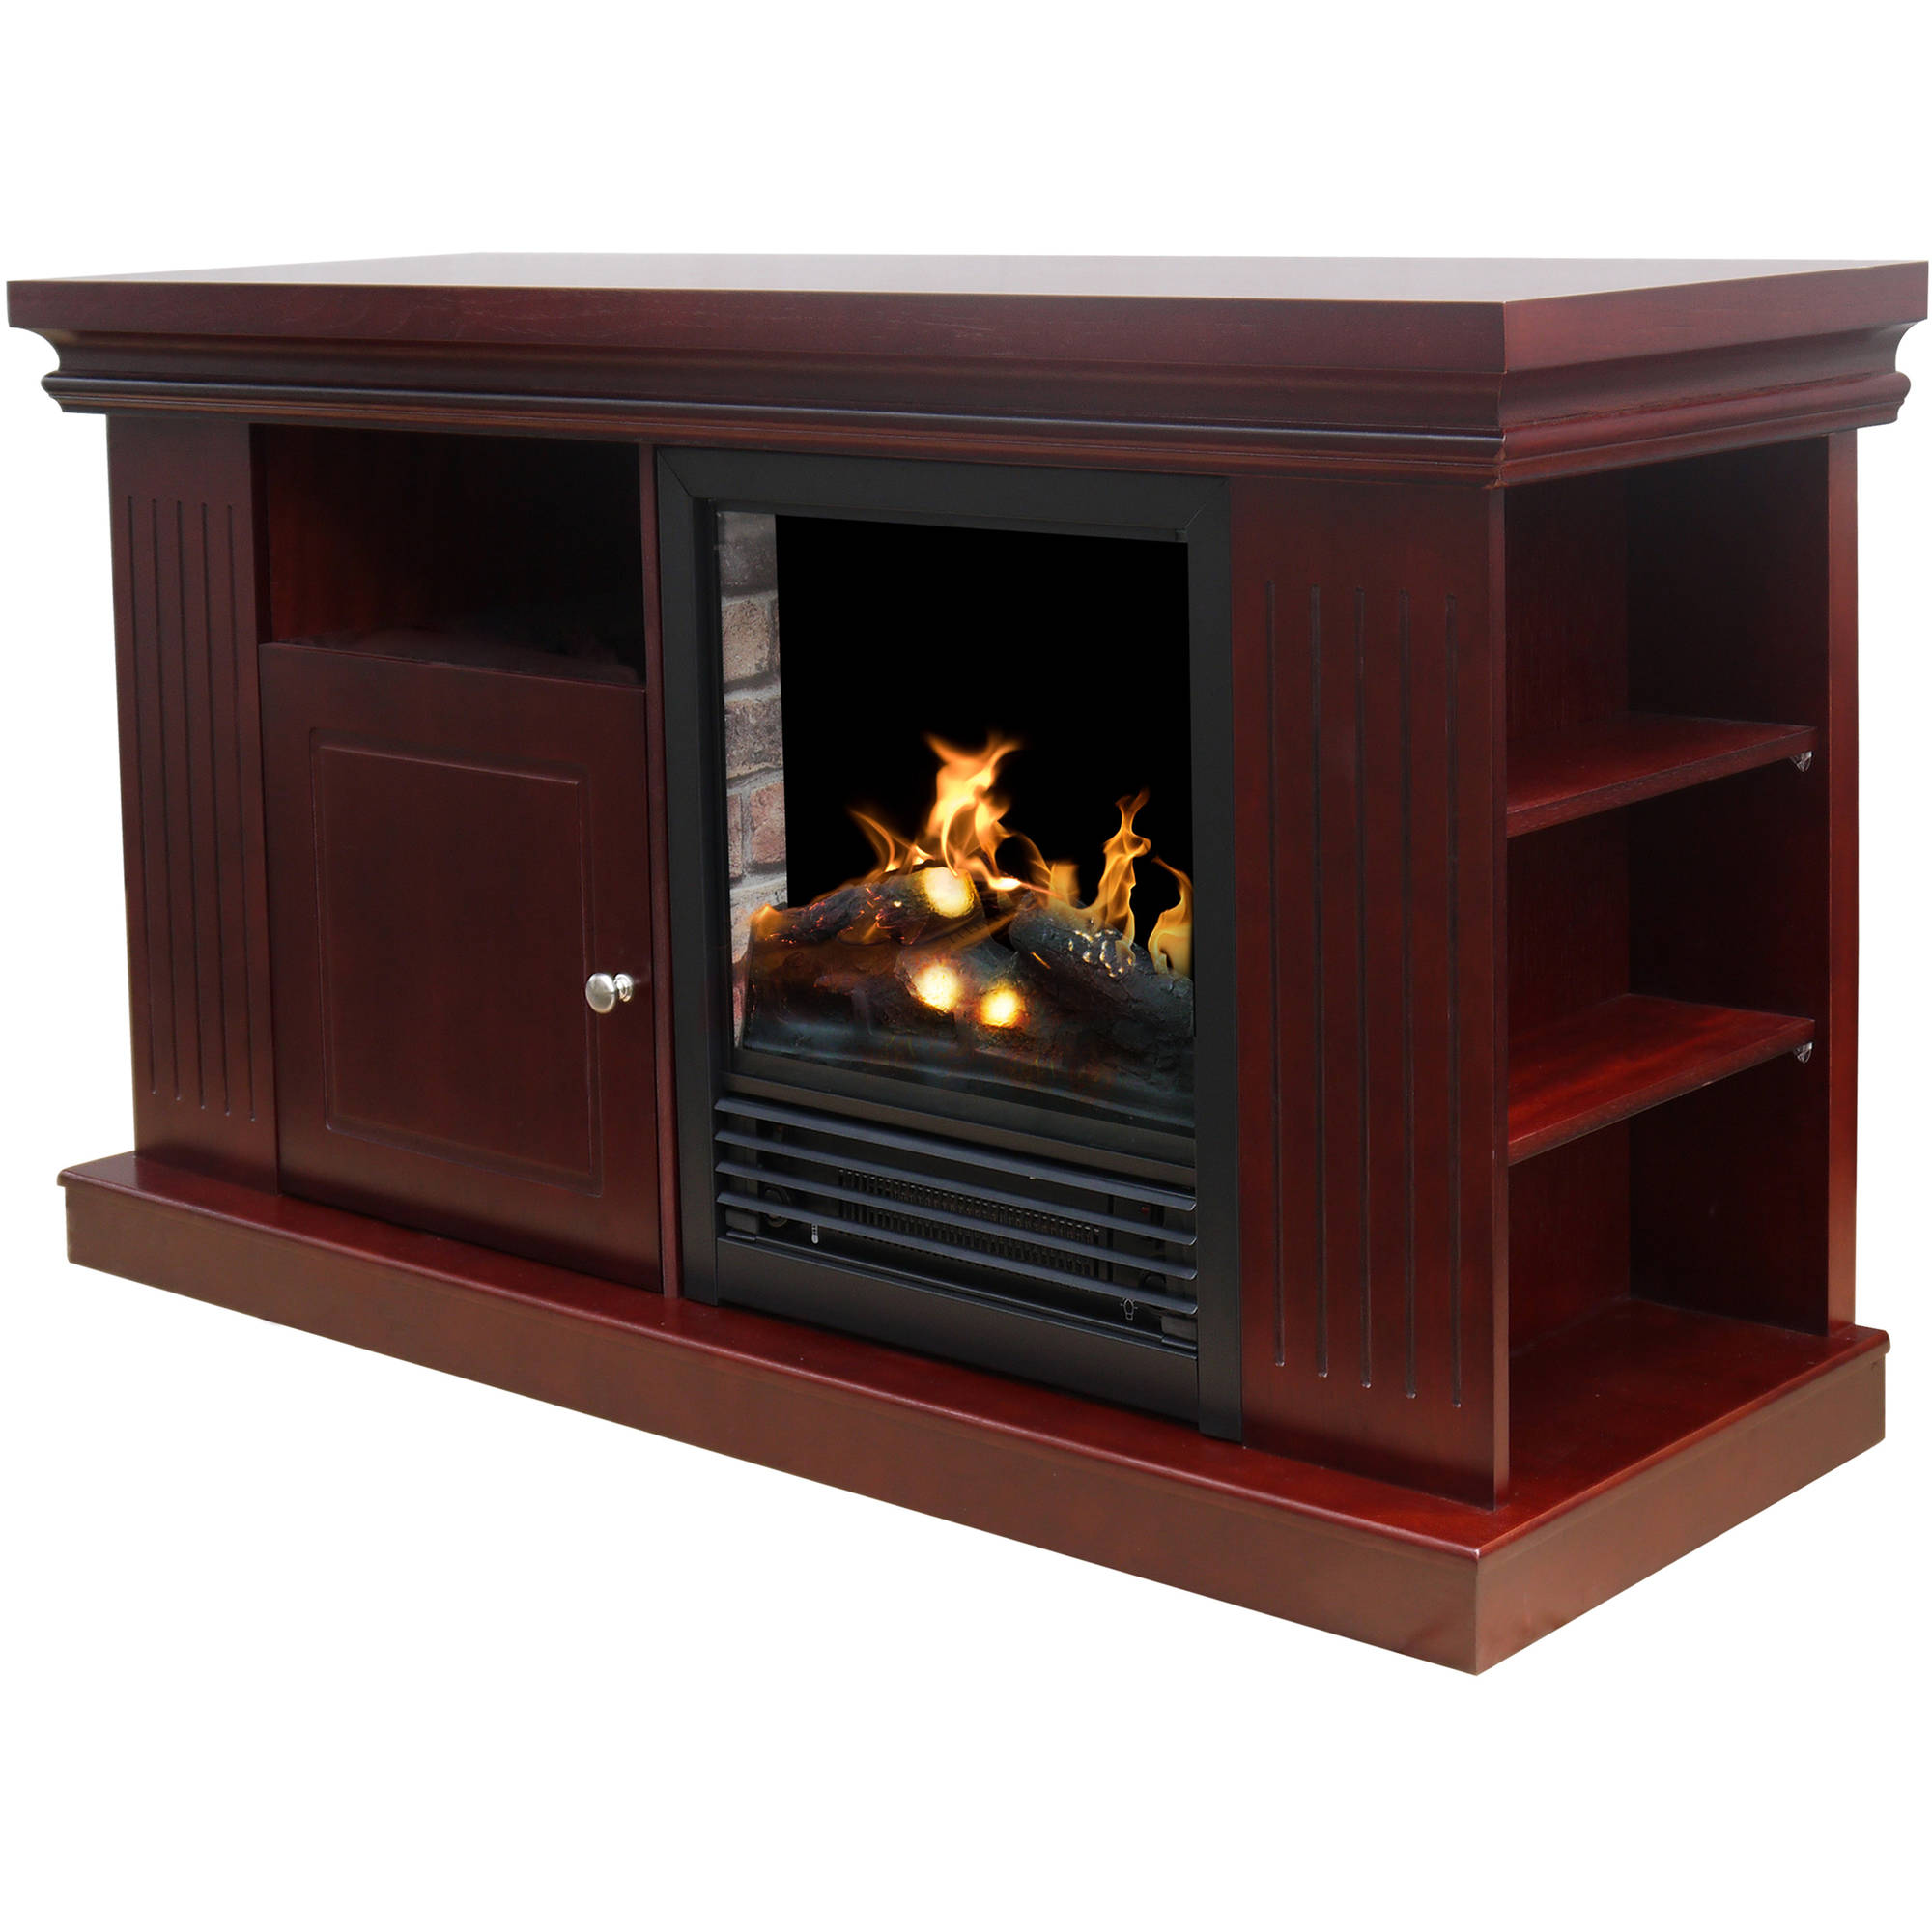 Wood Media Tv Stand Console With Fireplace 48 Media Fireplace For Tvs Up To 55 Ebay